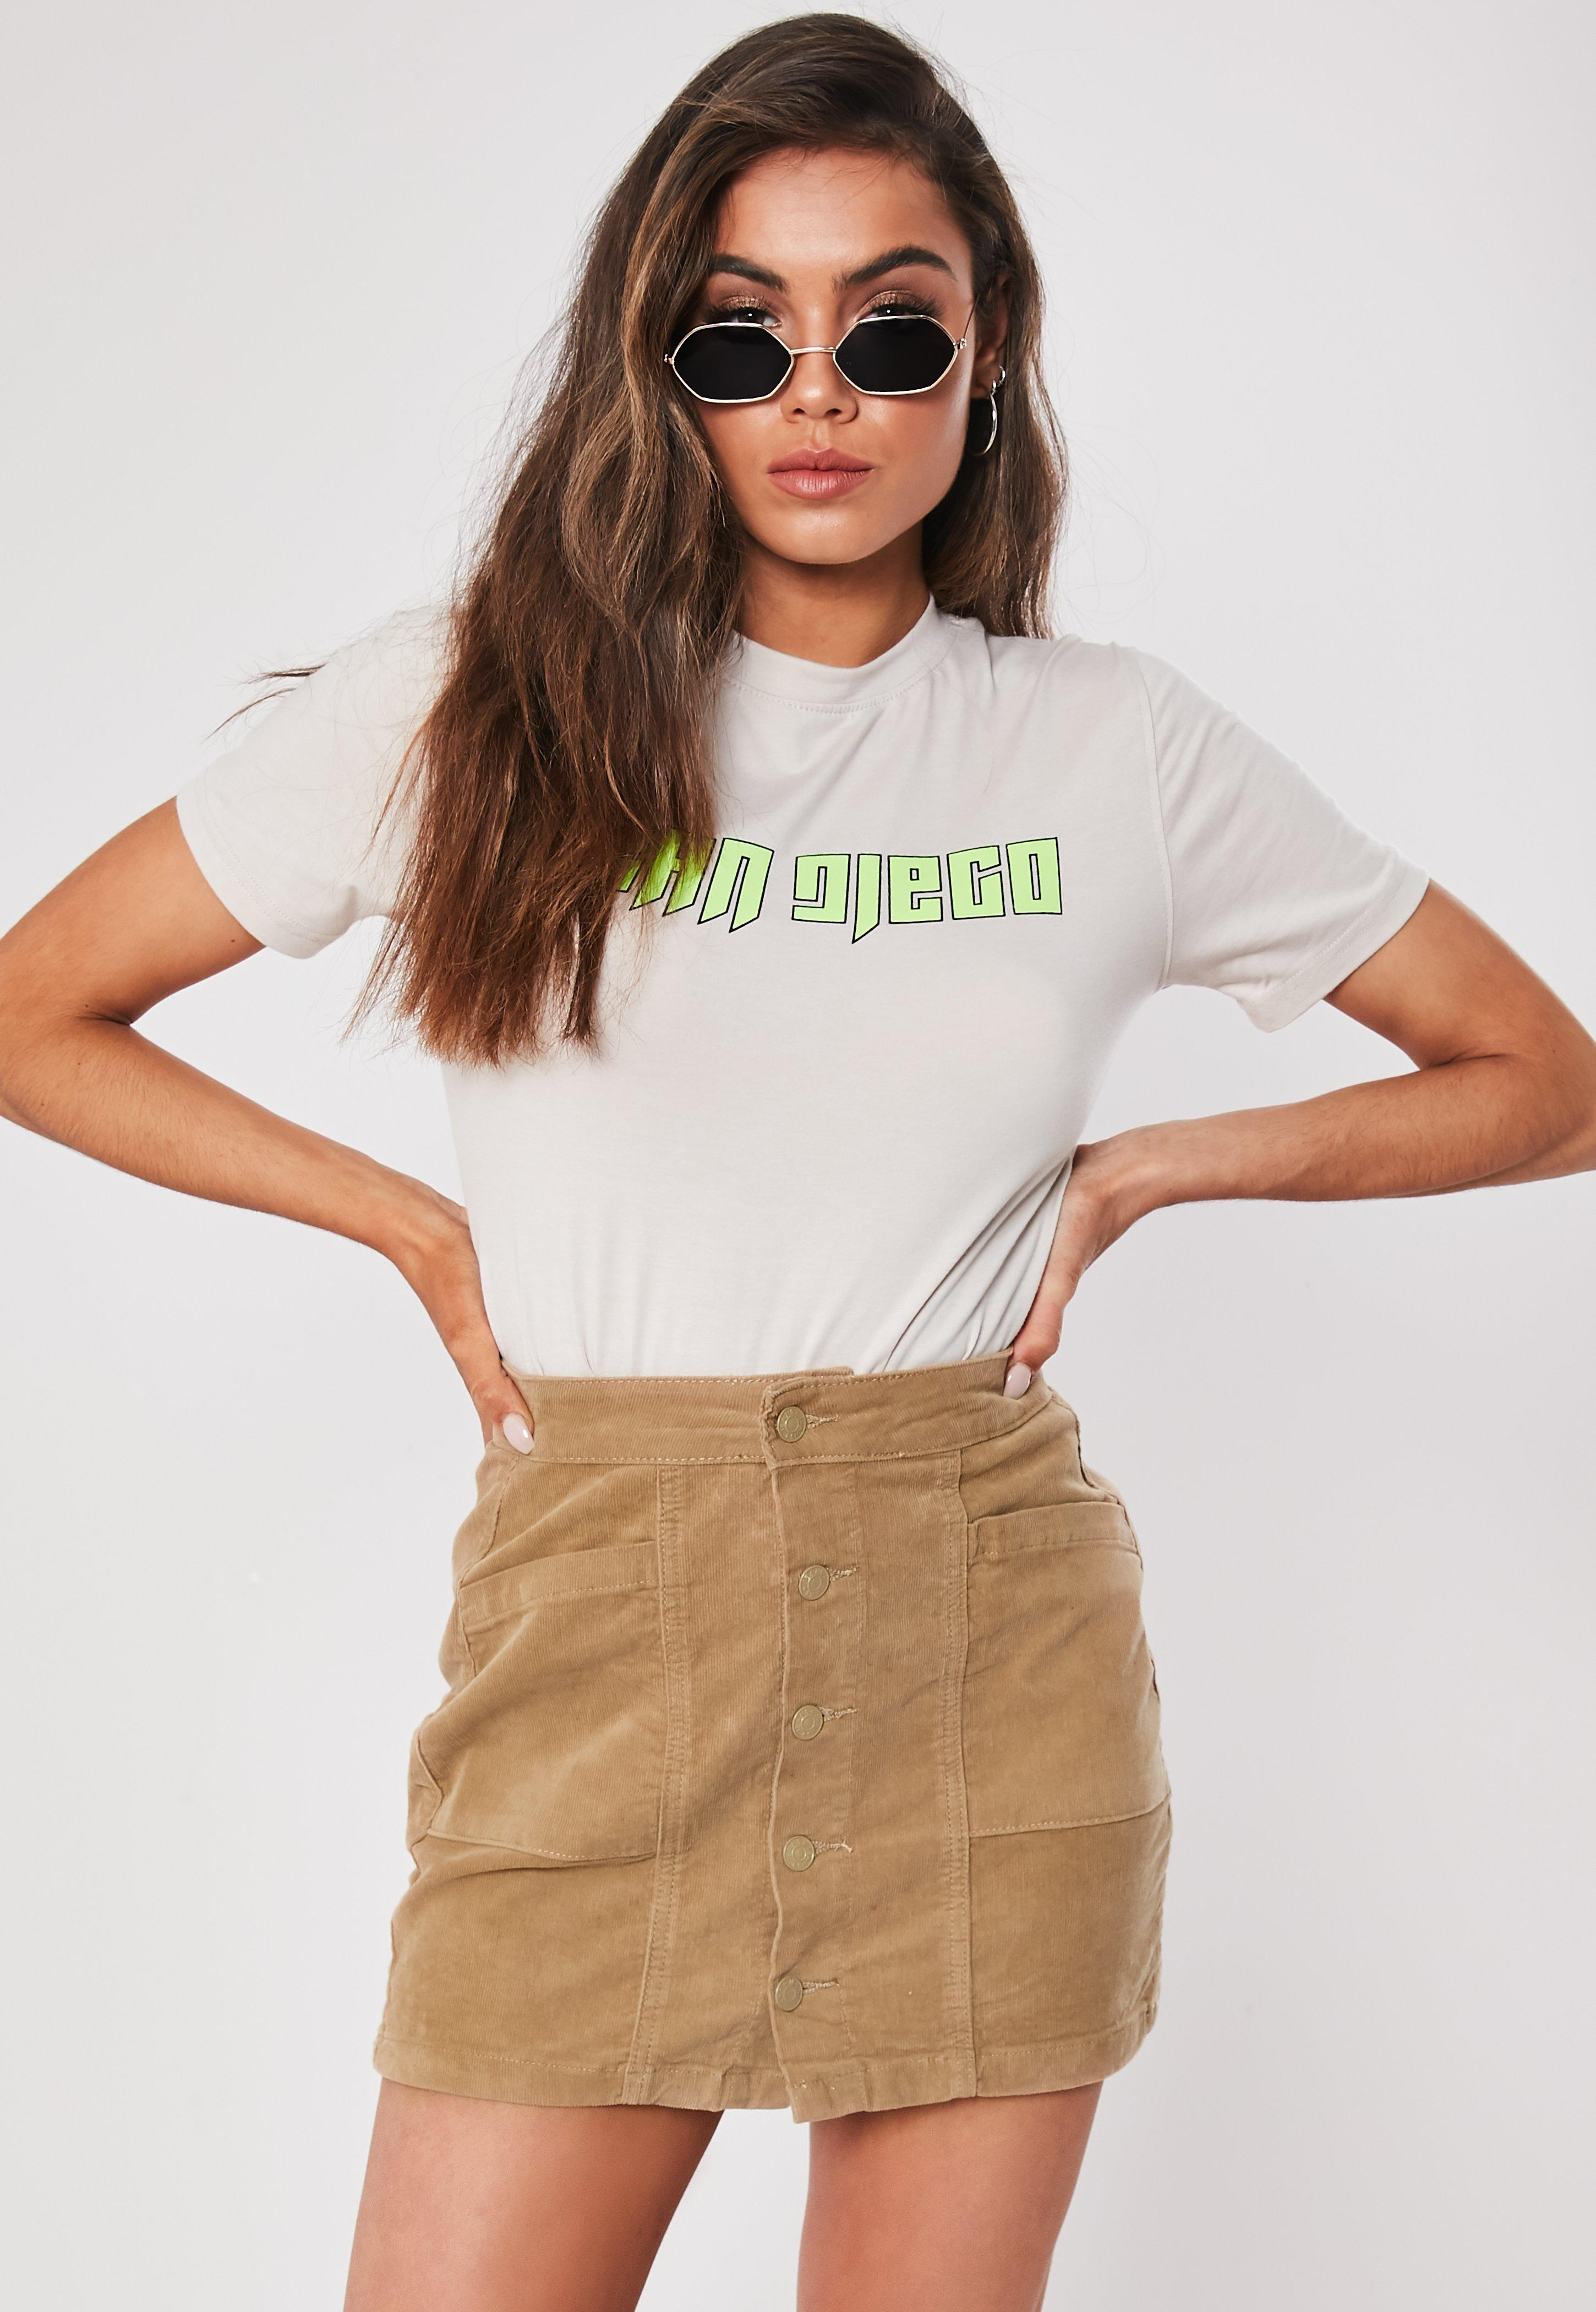 9e700bce3 Lyst - Missguided Tan Cord Mini Skirt in Brown